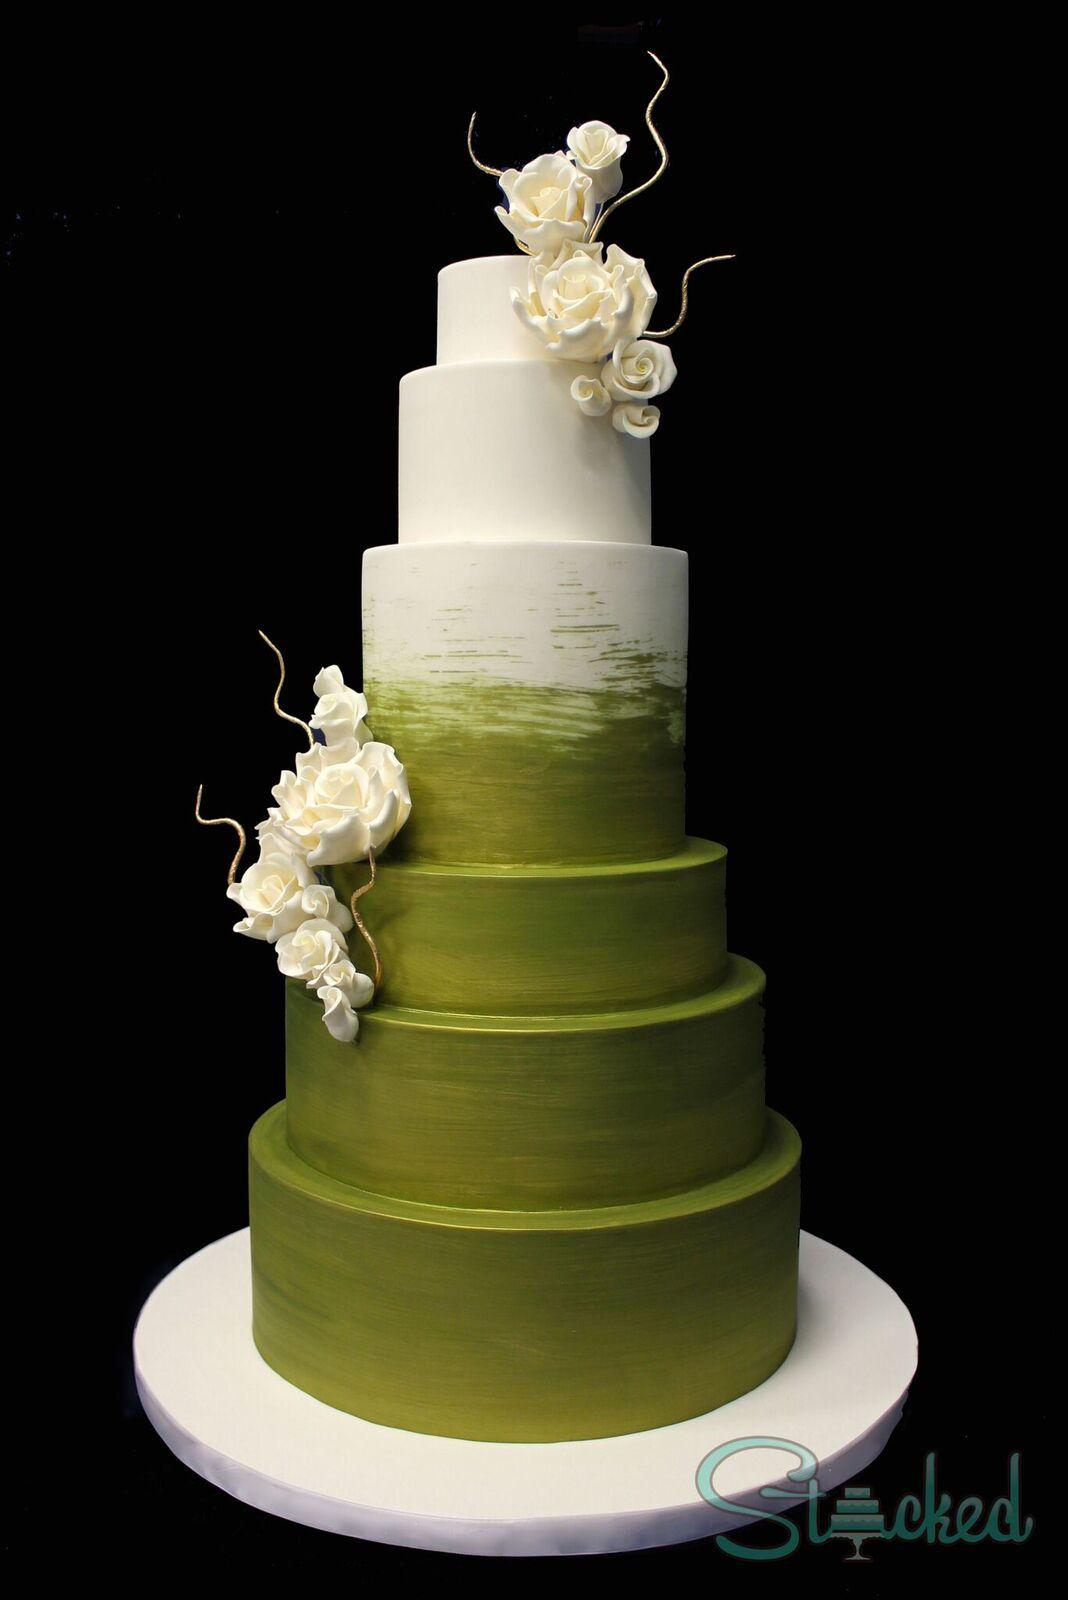 White and green hand painted wedding cake with sugar flowers